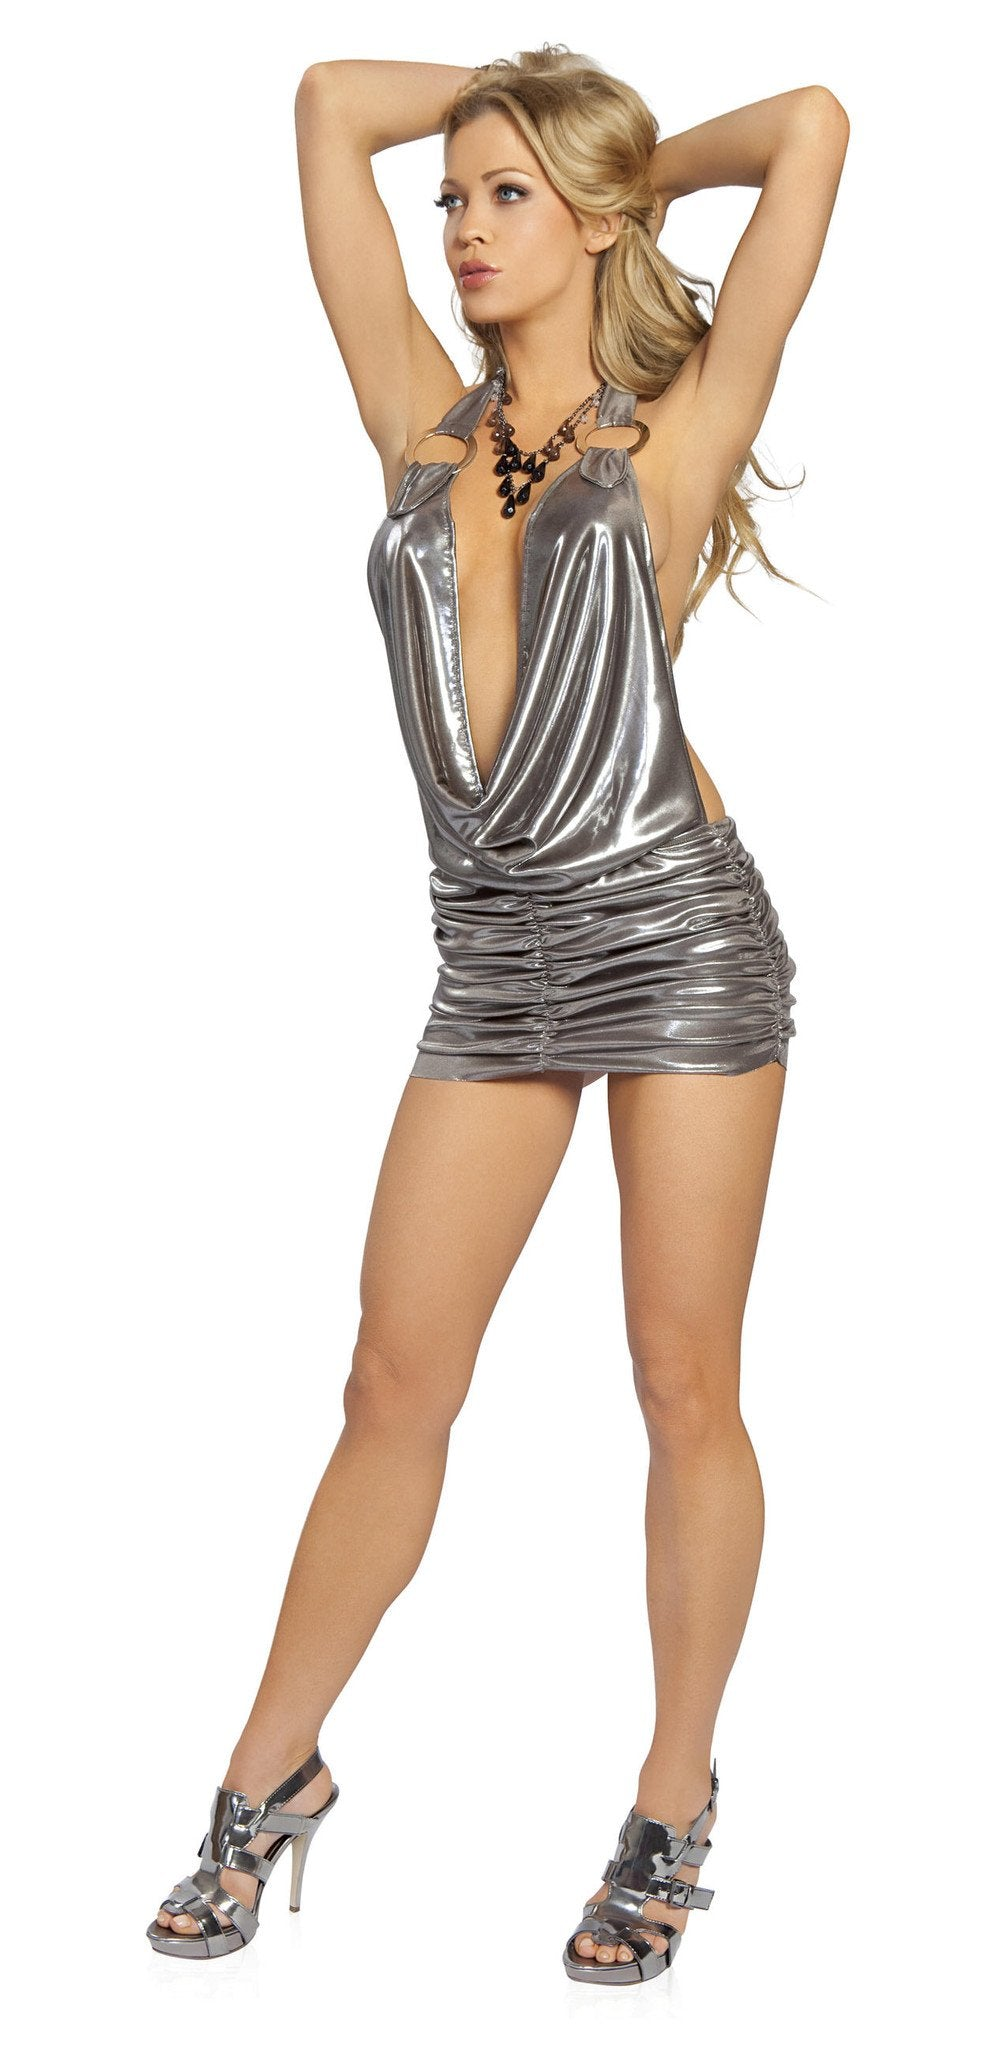 3141 - 1pc Cowl Neck Gunmetal Mini Dress, Women's Fashion - Women's Clothing - Mini Dresses - Smash Marketing